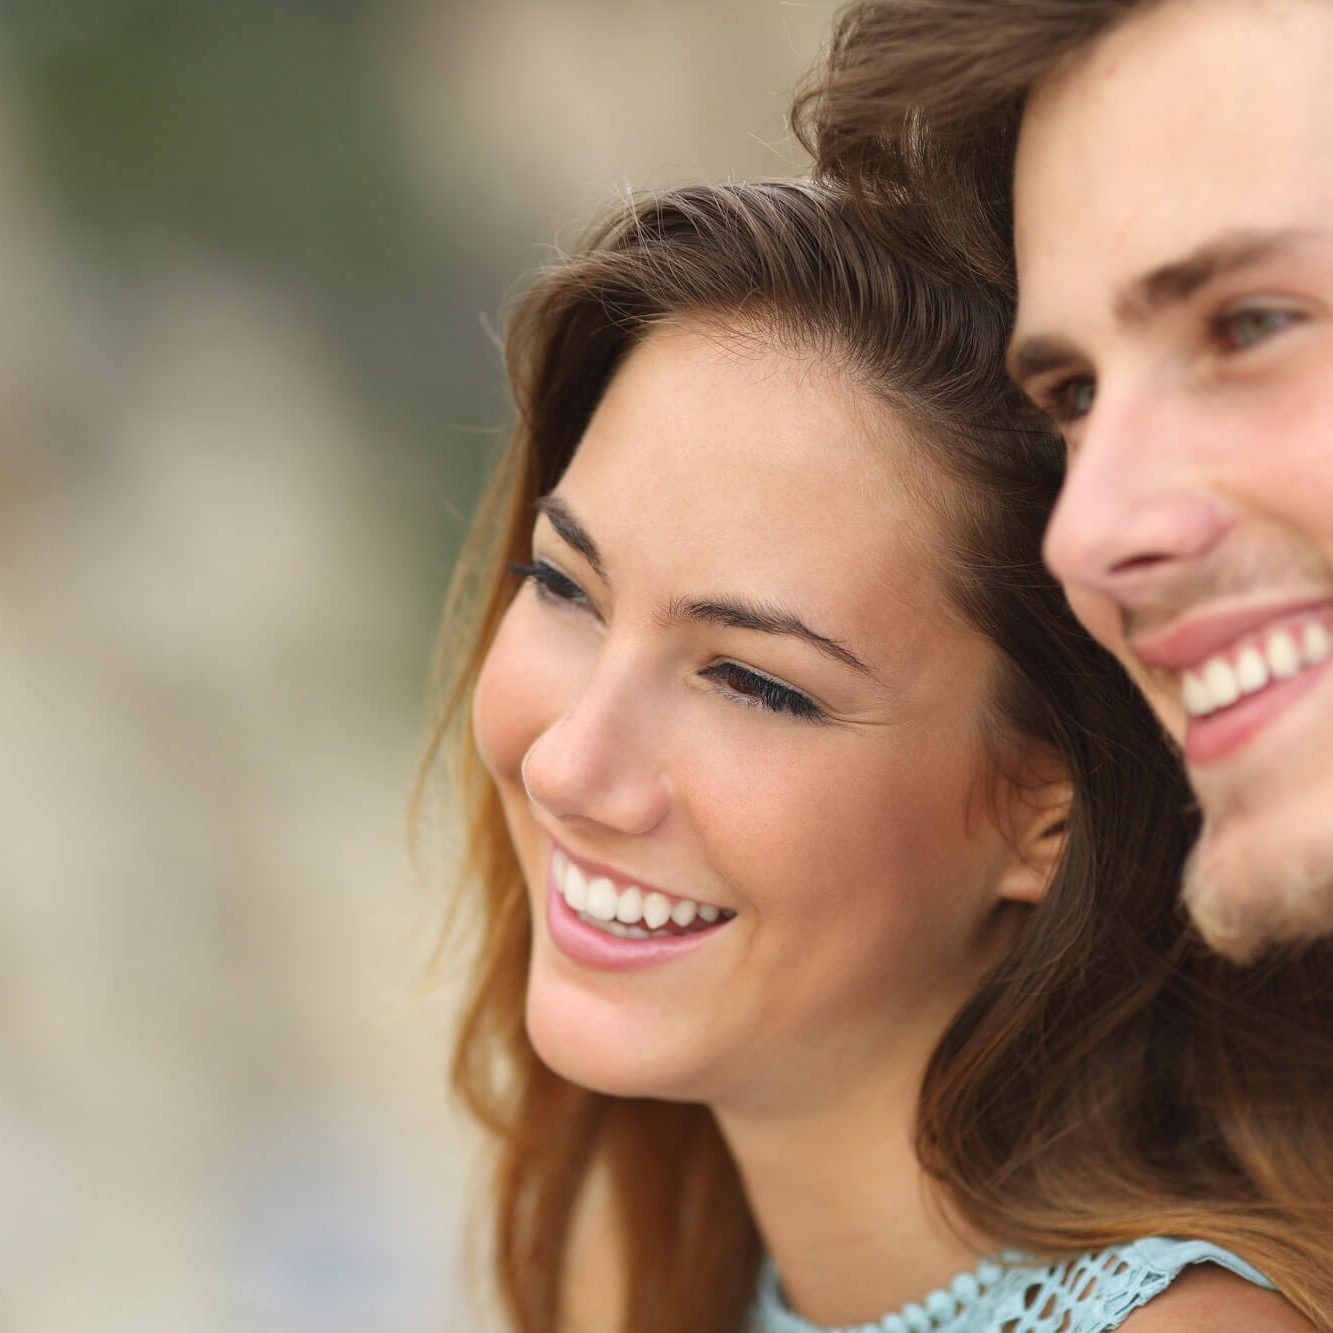 Smiling couple with beautiful teeth